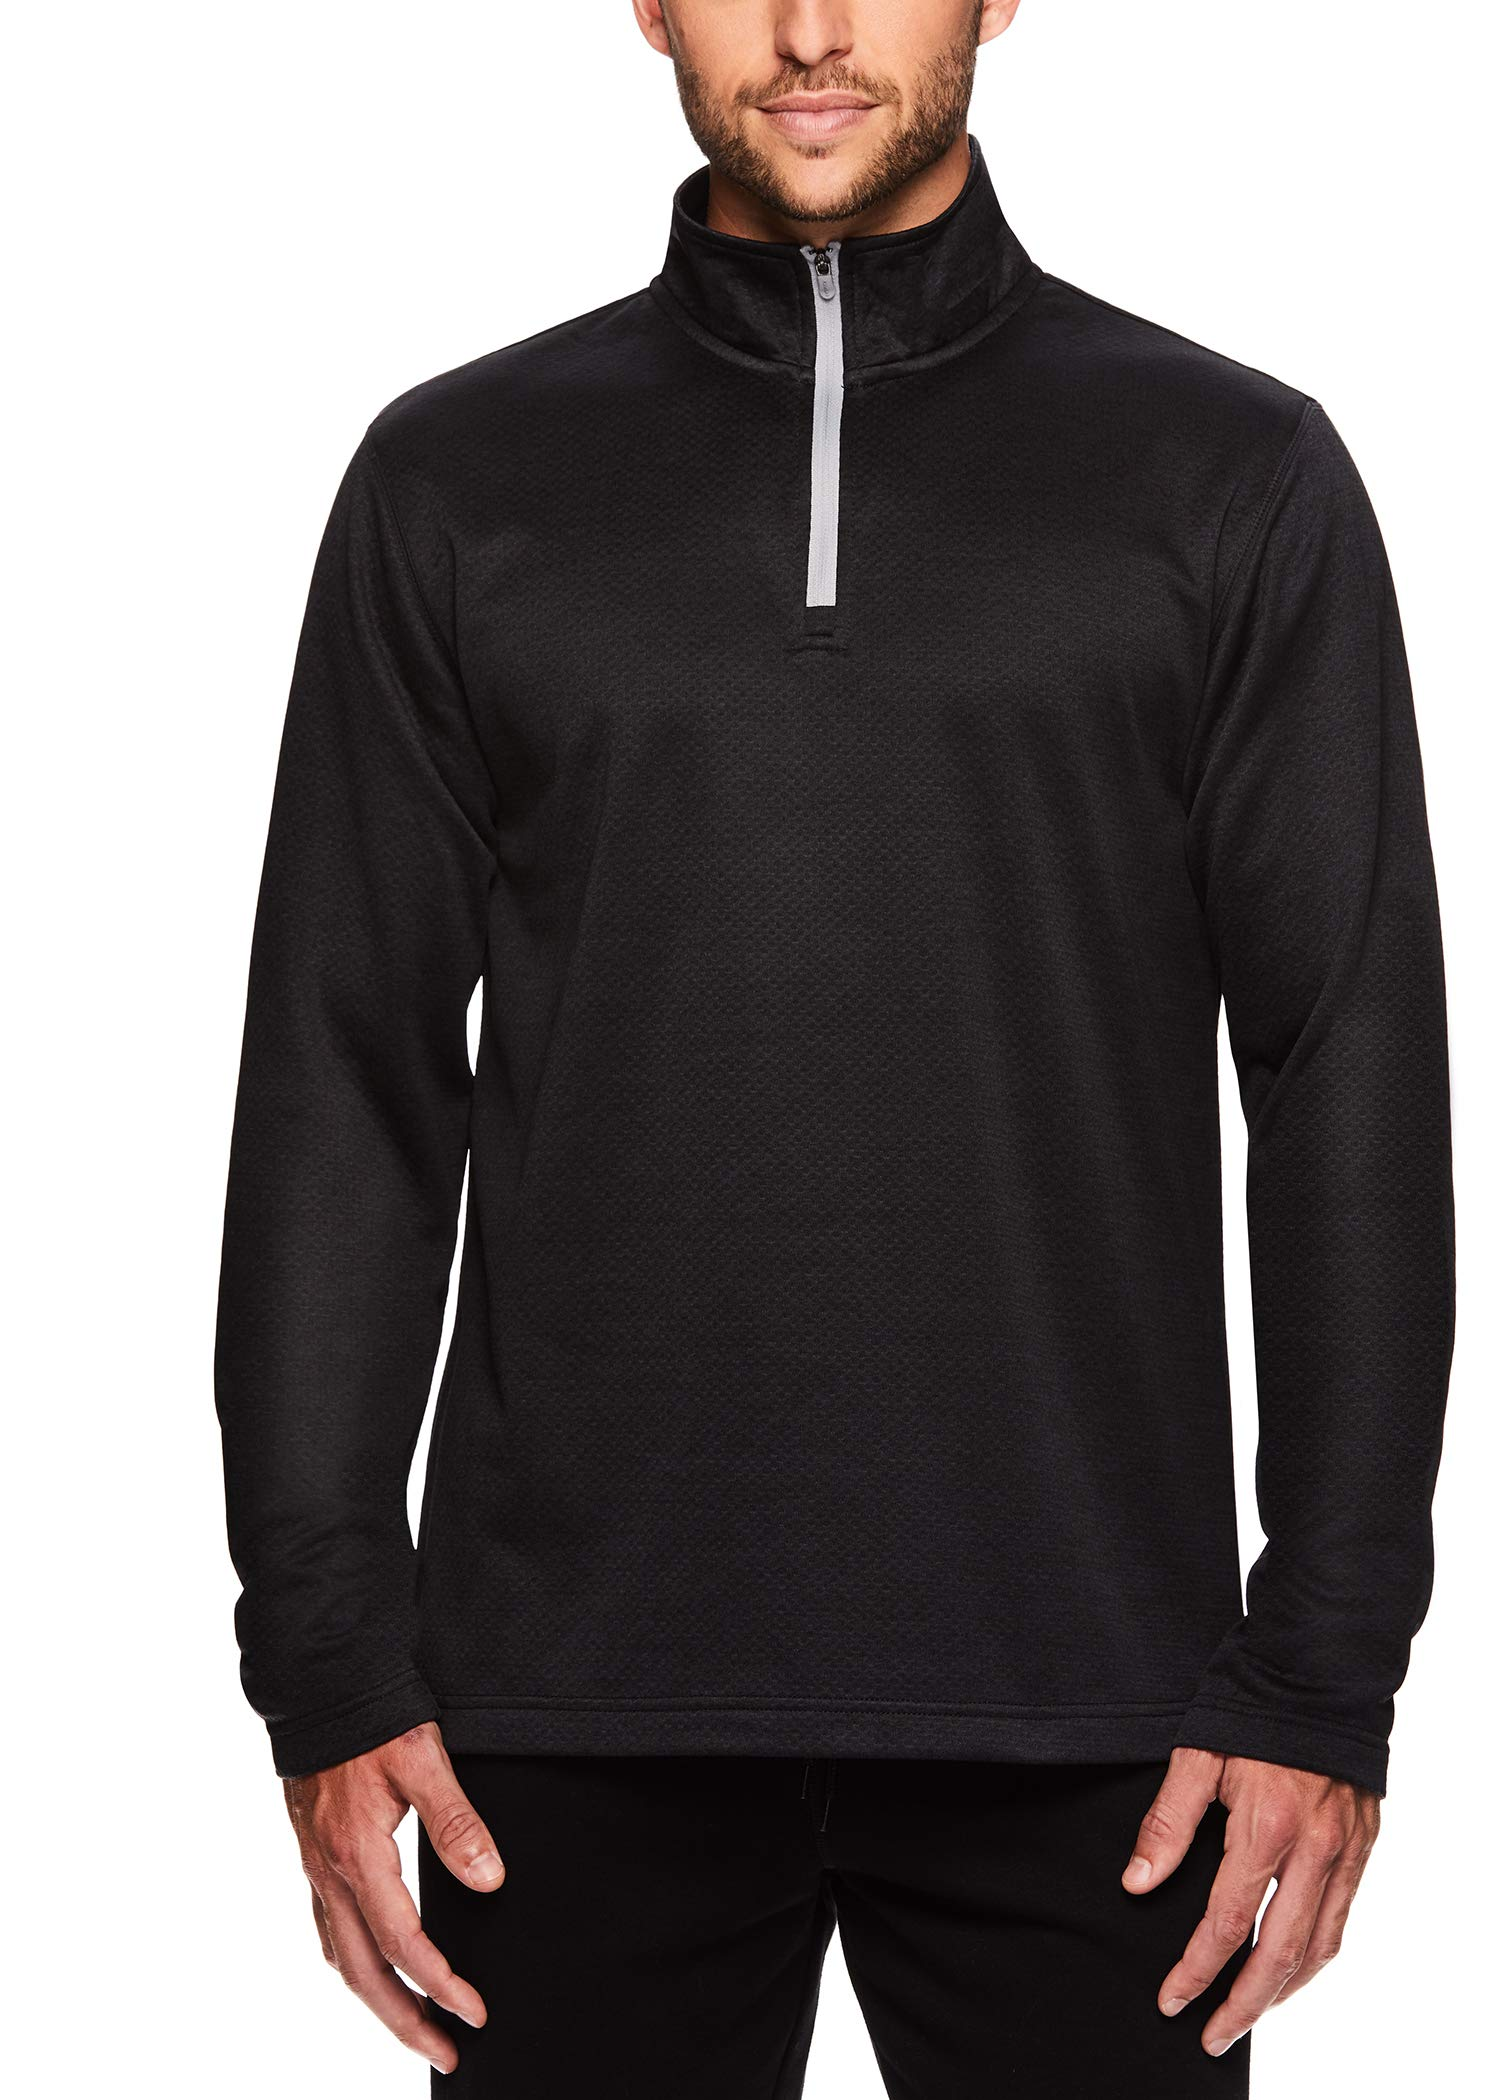 HEAD Men's 1/4 Zip Up Activewear Pullover Jacket - Long Sleeve Running & Workout Sweater - Showtime Black Heather, Small